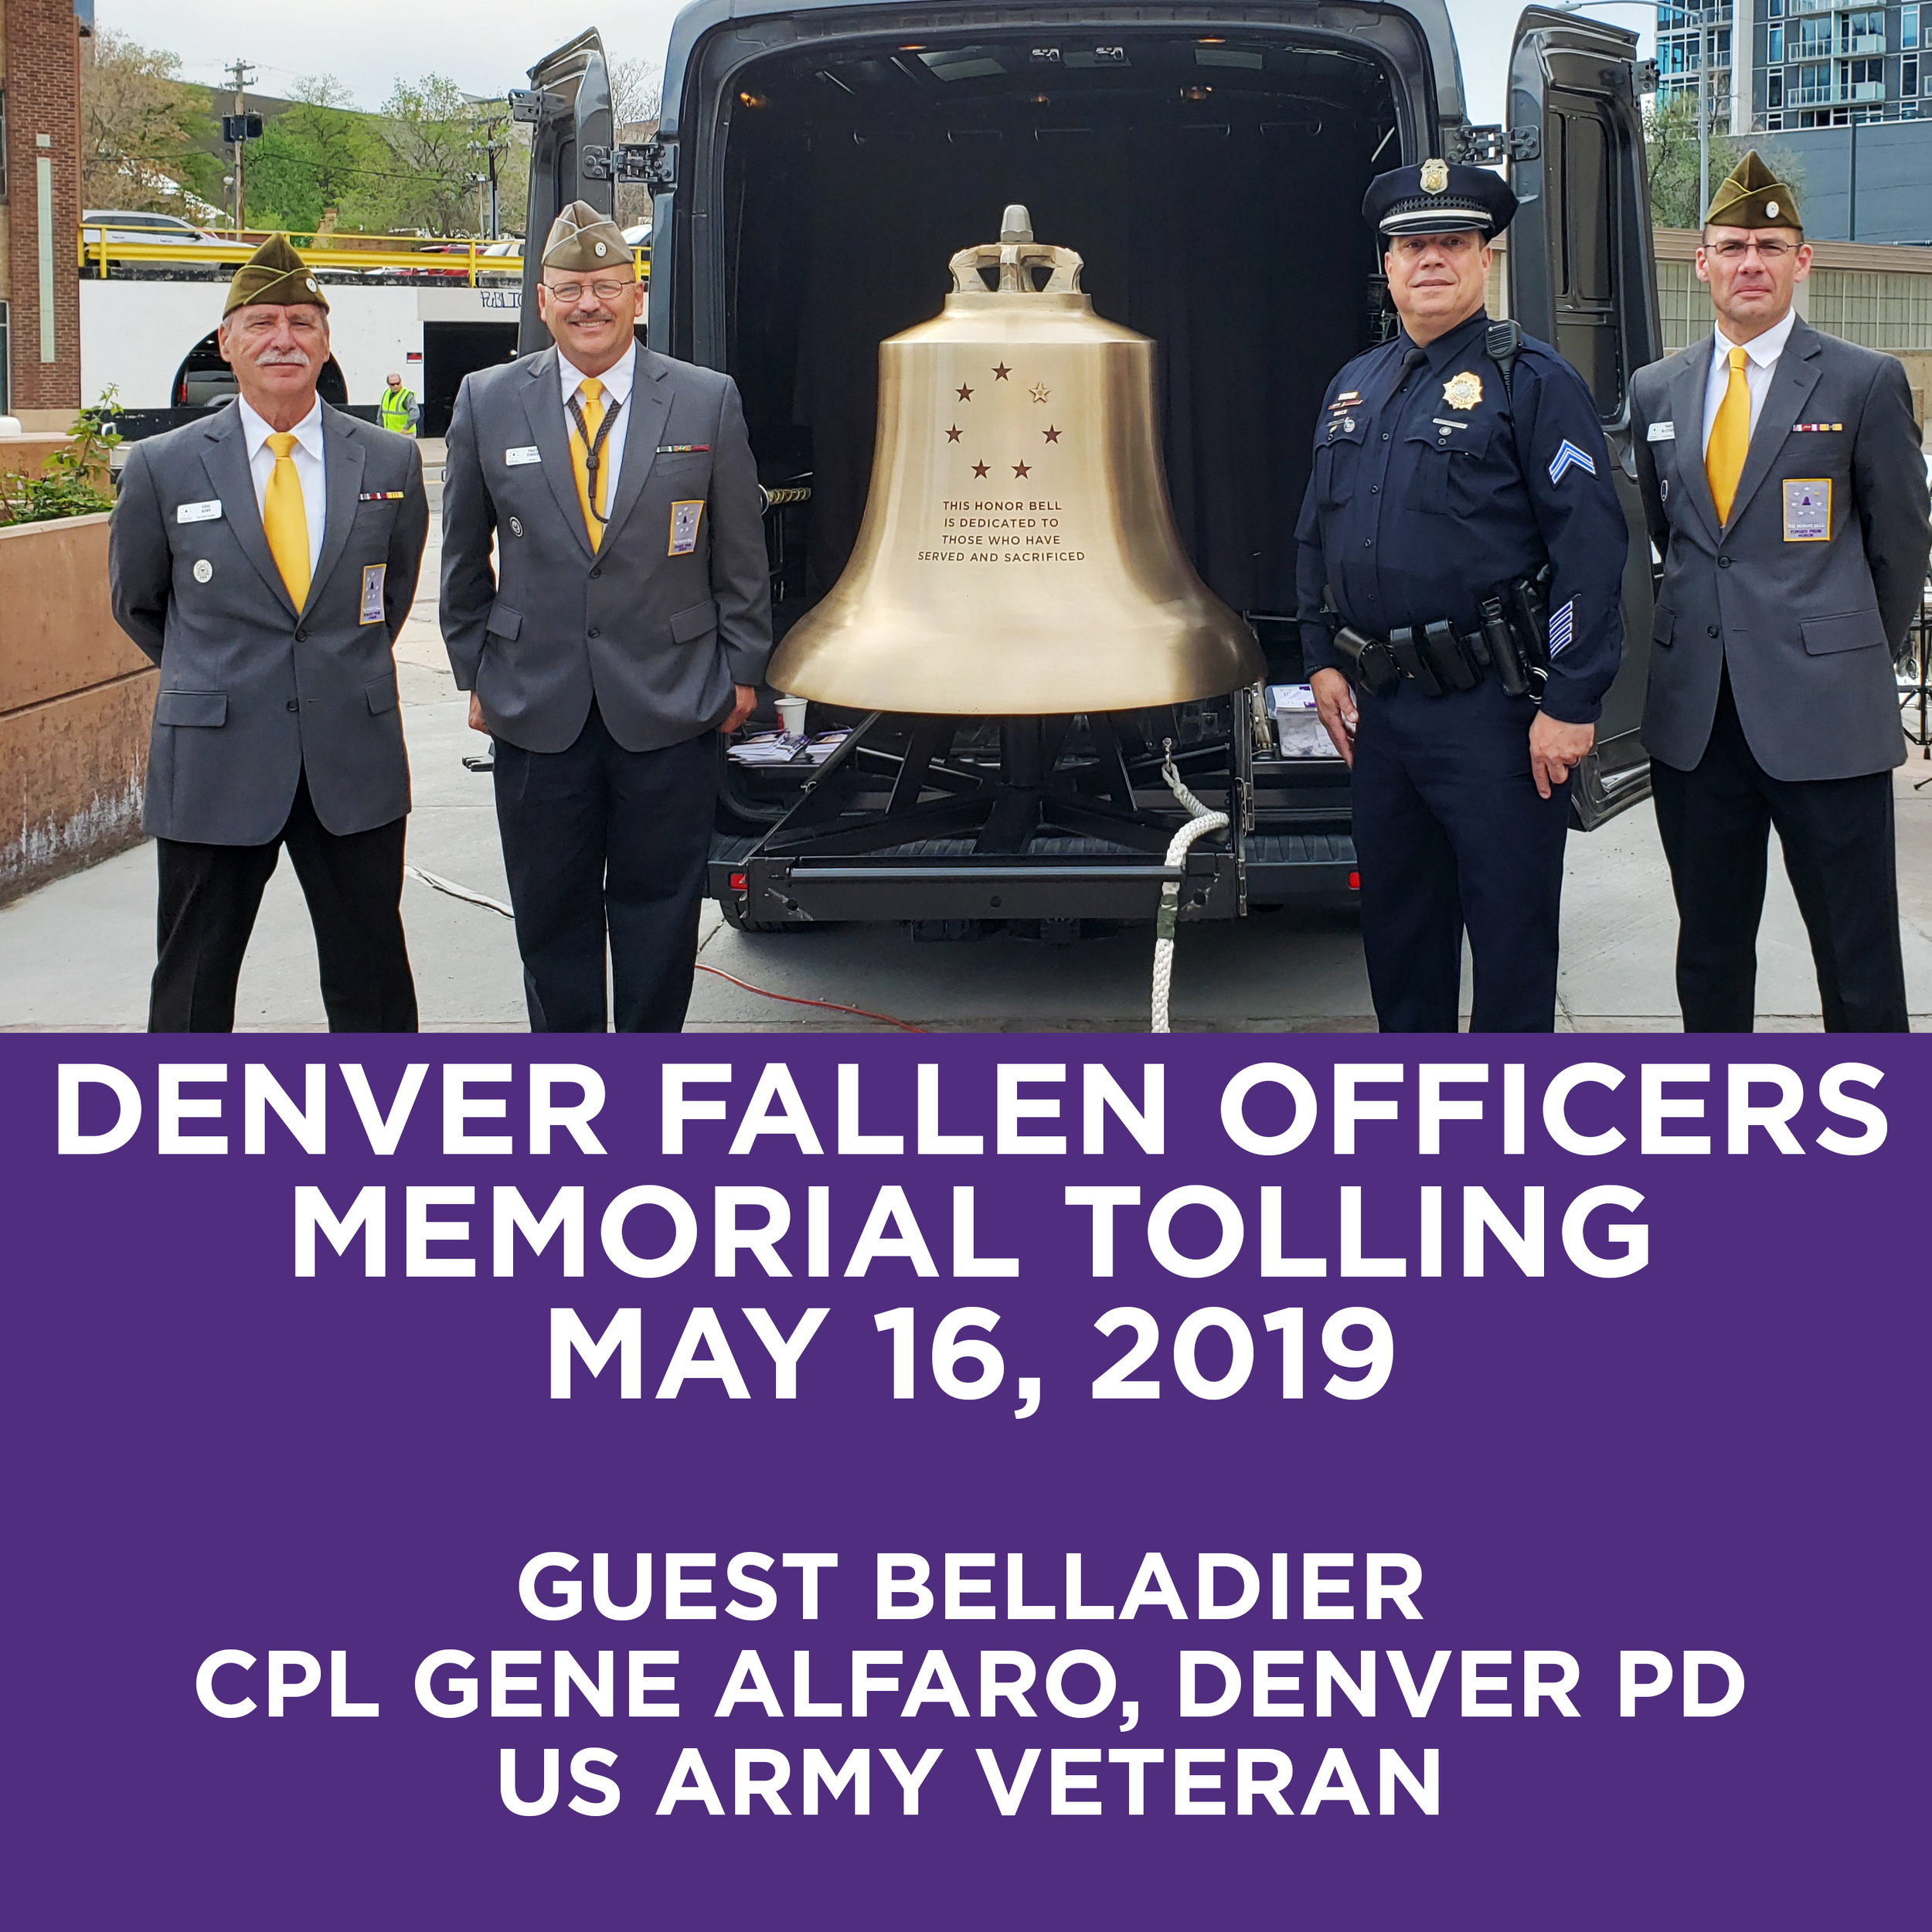 Guest Belladier DPD Cpl Gene Alfaro, Fomerly Army Sgt. Military Police square.jpg